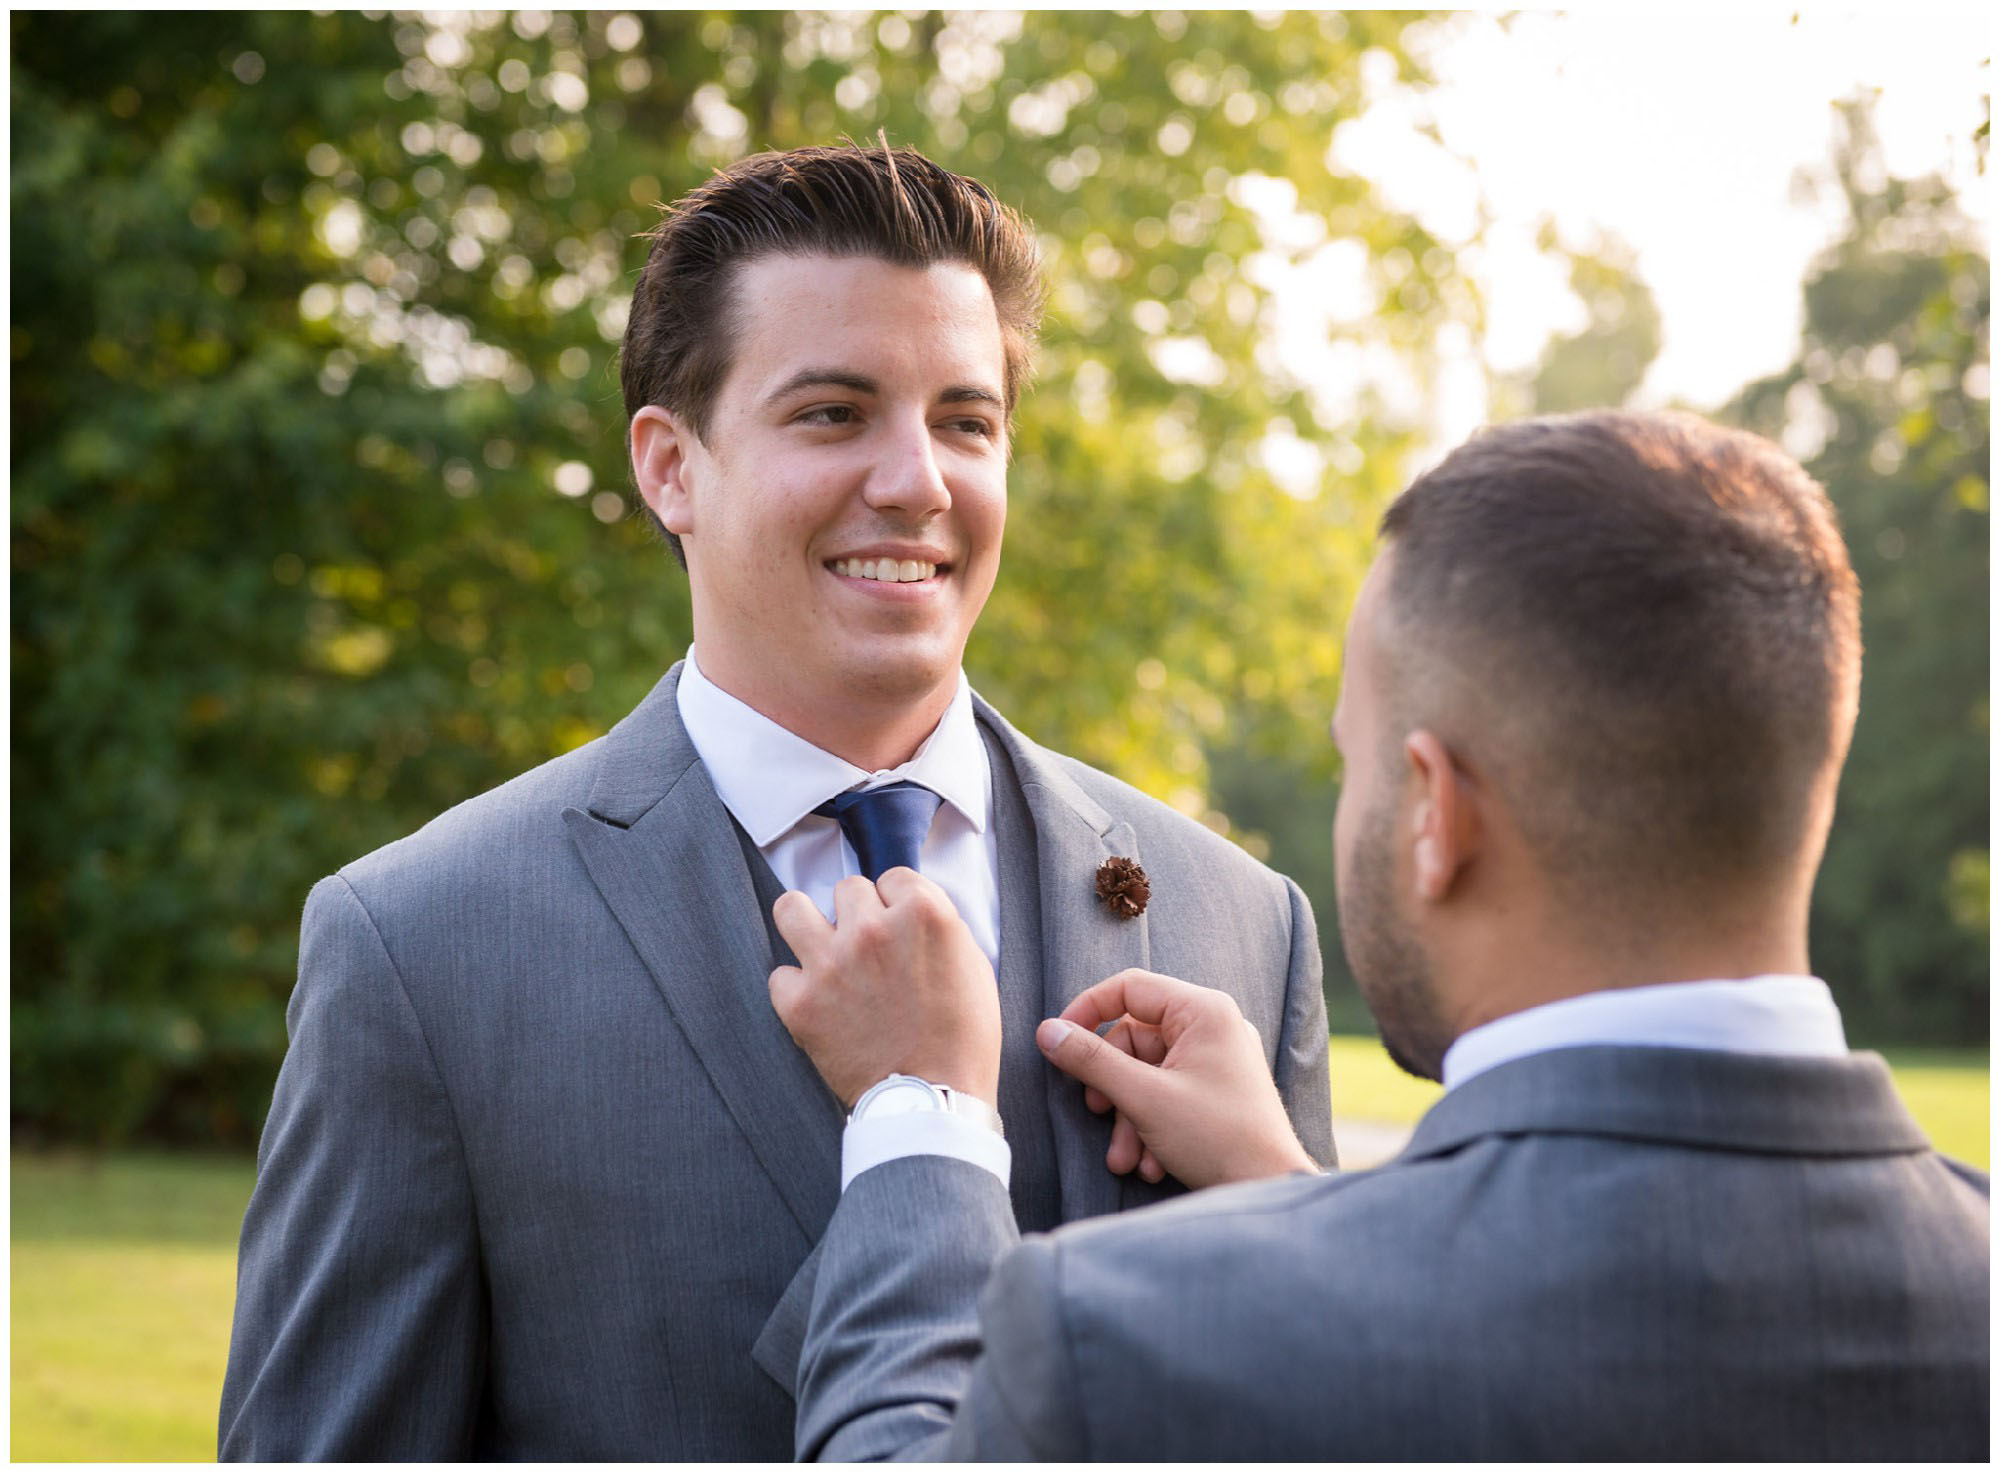 groom tying tie before wedding